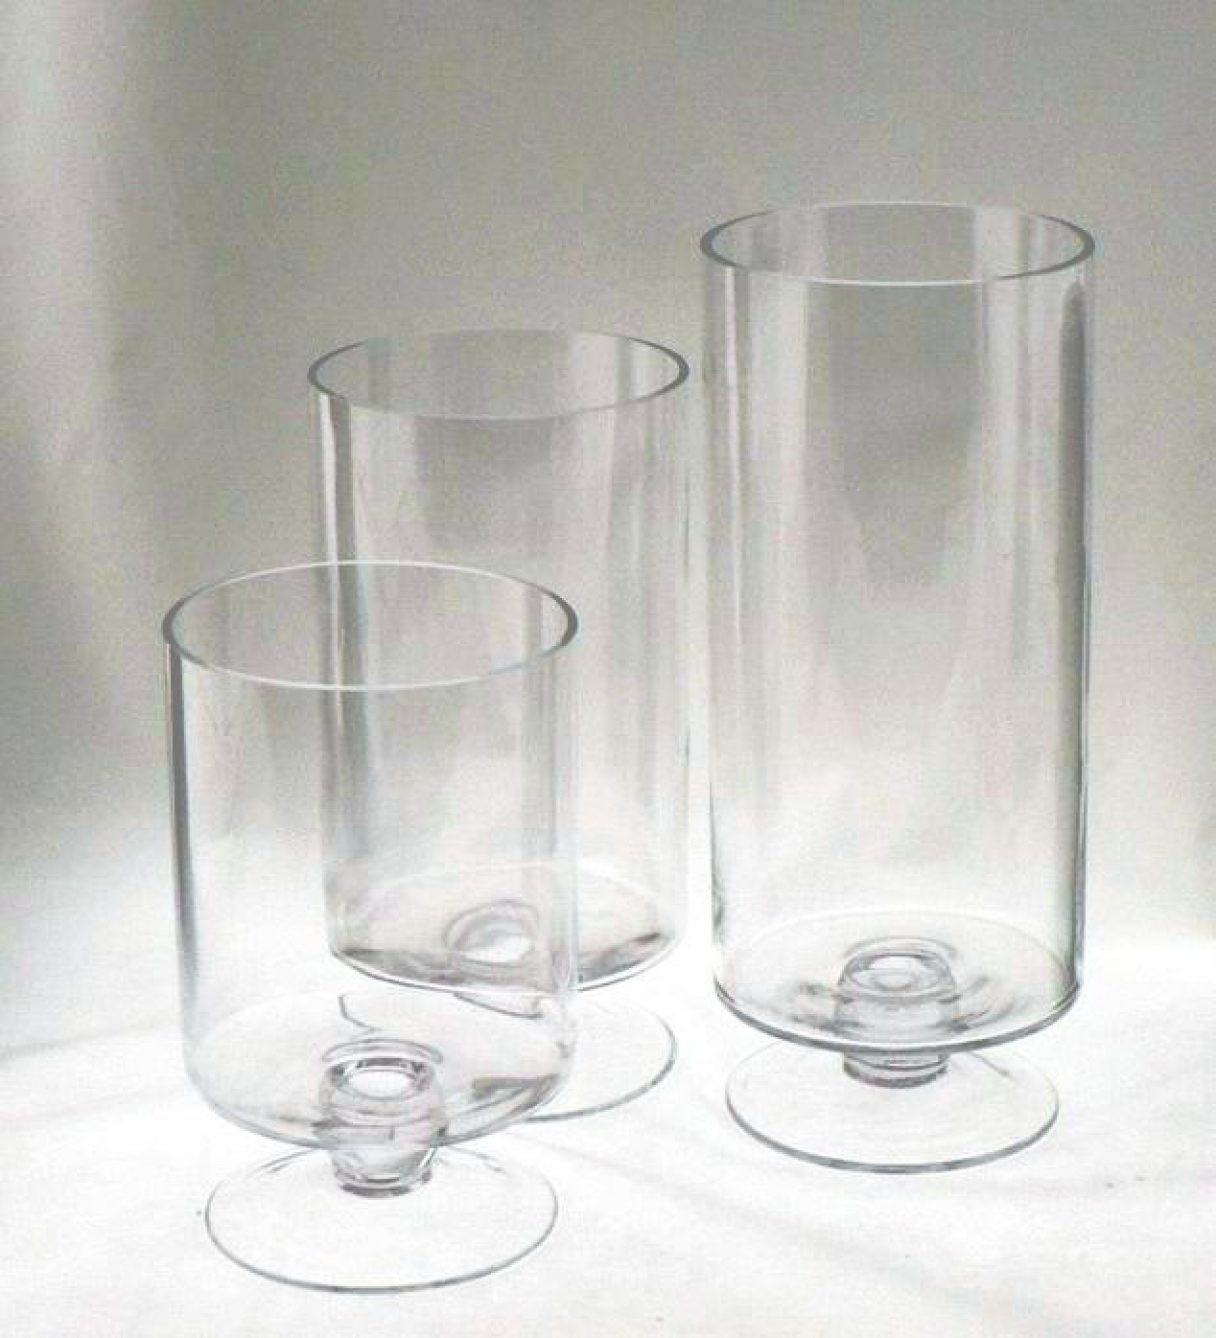 clear cylinder vases of dollar tree bulk vases wiring diagrams • with regard to vases in bulk design ideas bowls and containers at dollartree flower rh alfawhite info dollar tree cylinder vases dollar tree vases centerpieces